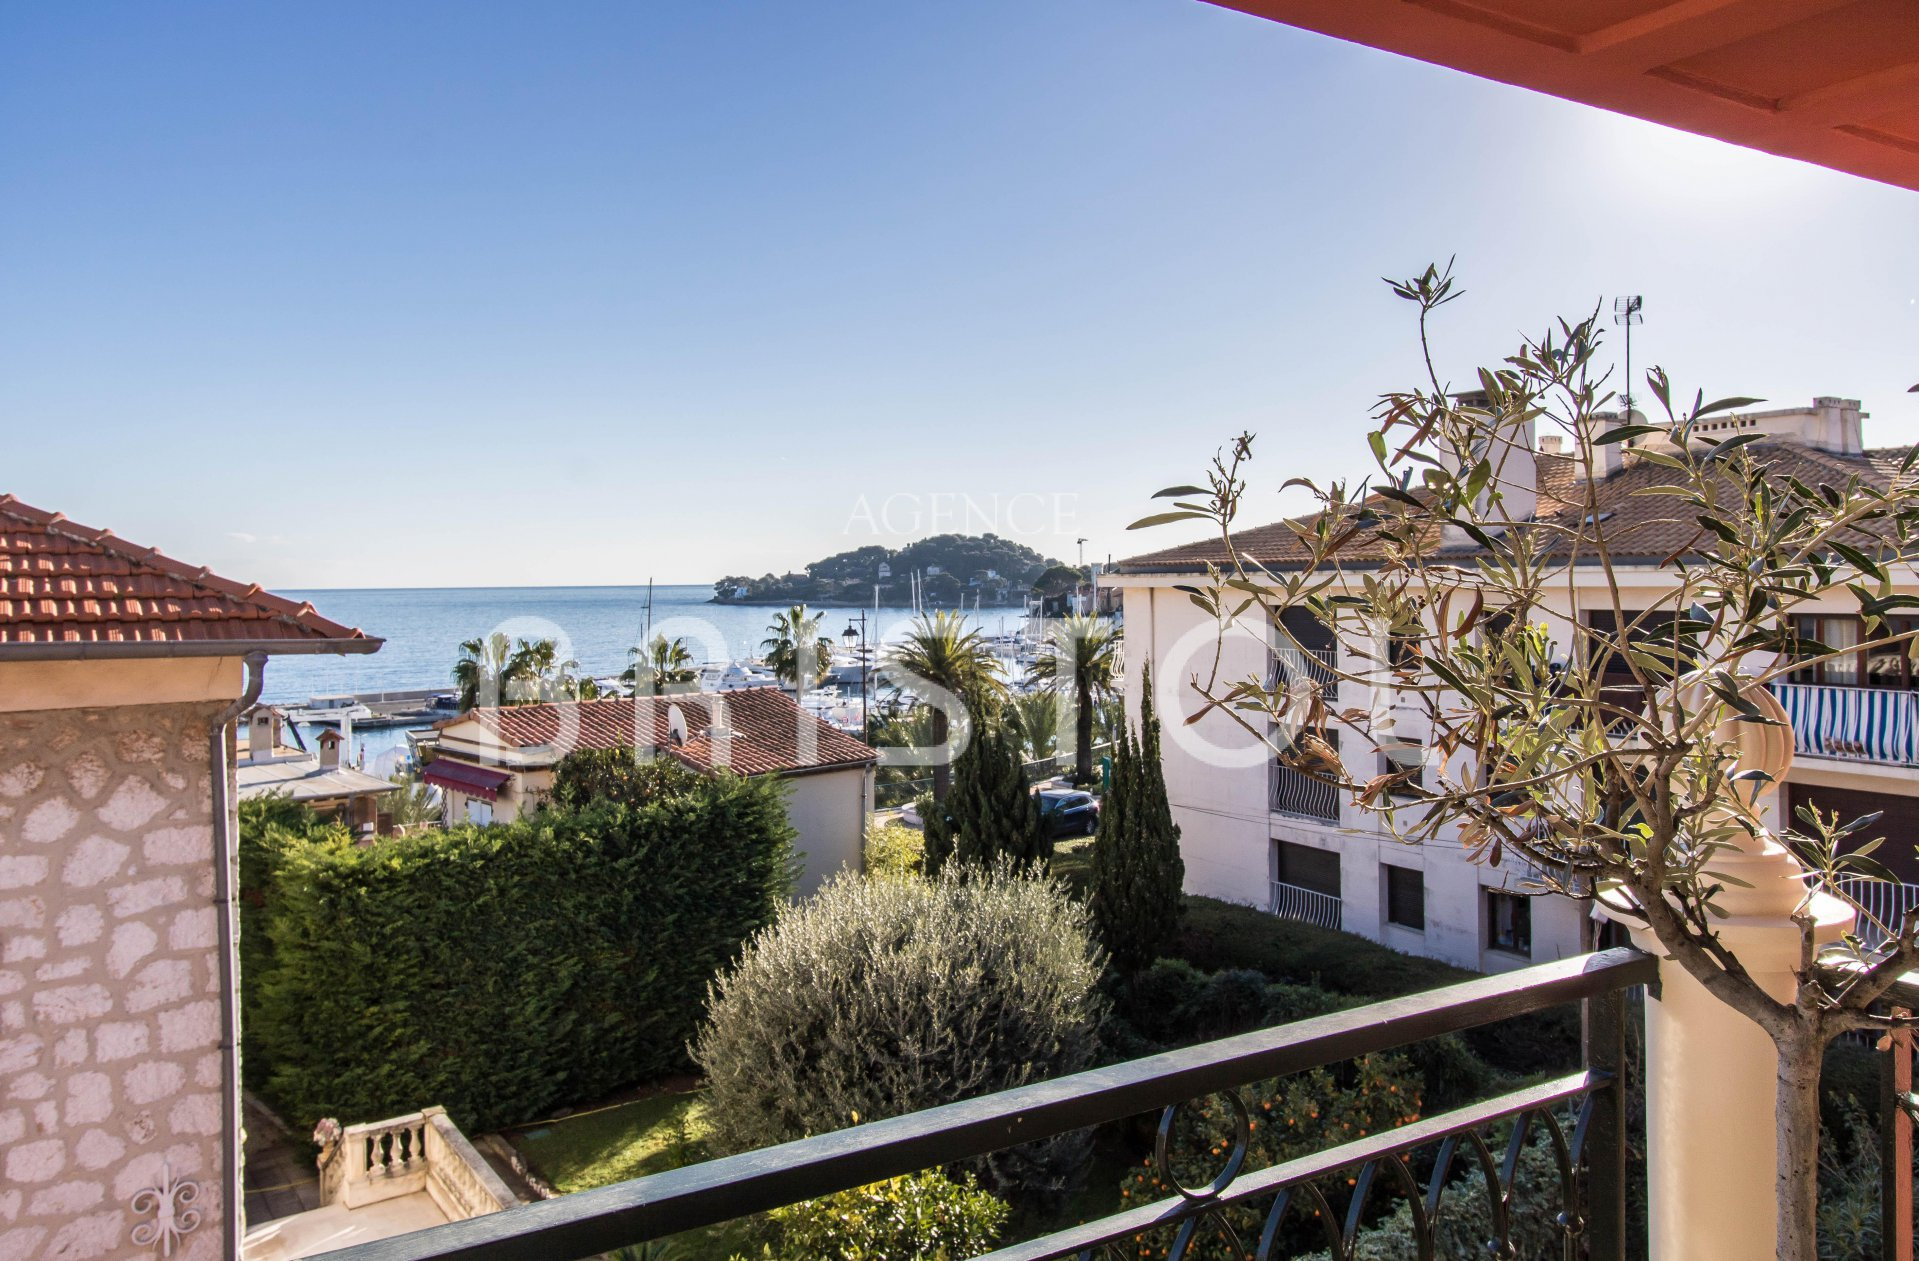 Top floor apartment for sale in Saint Jean Cap Ferrat - sea view